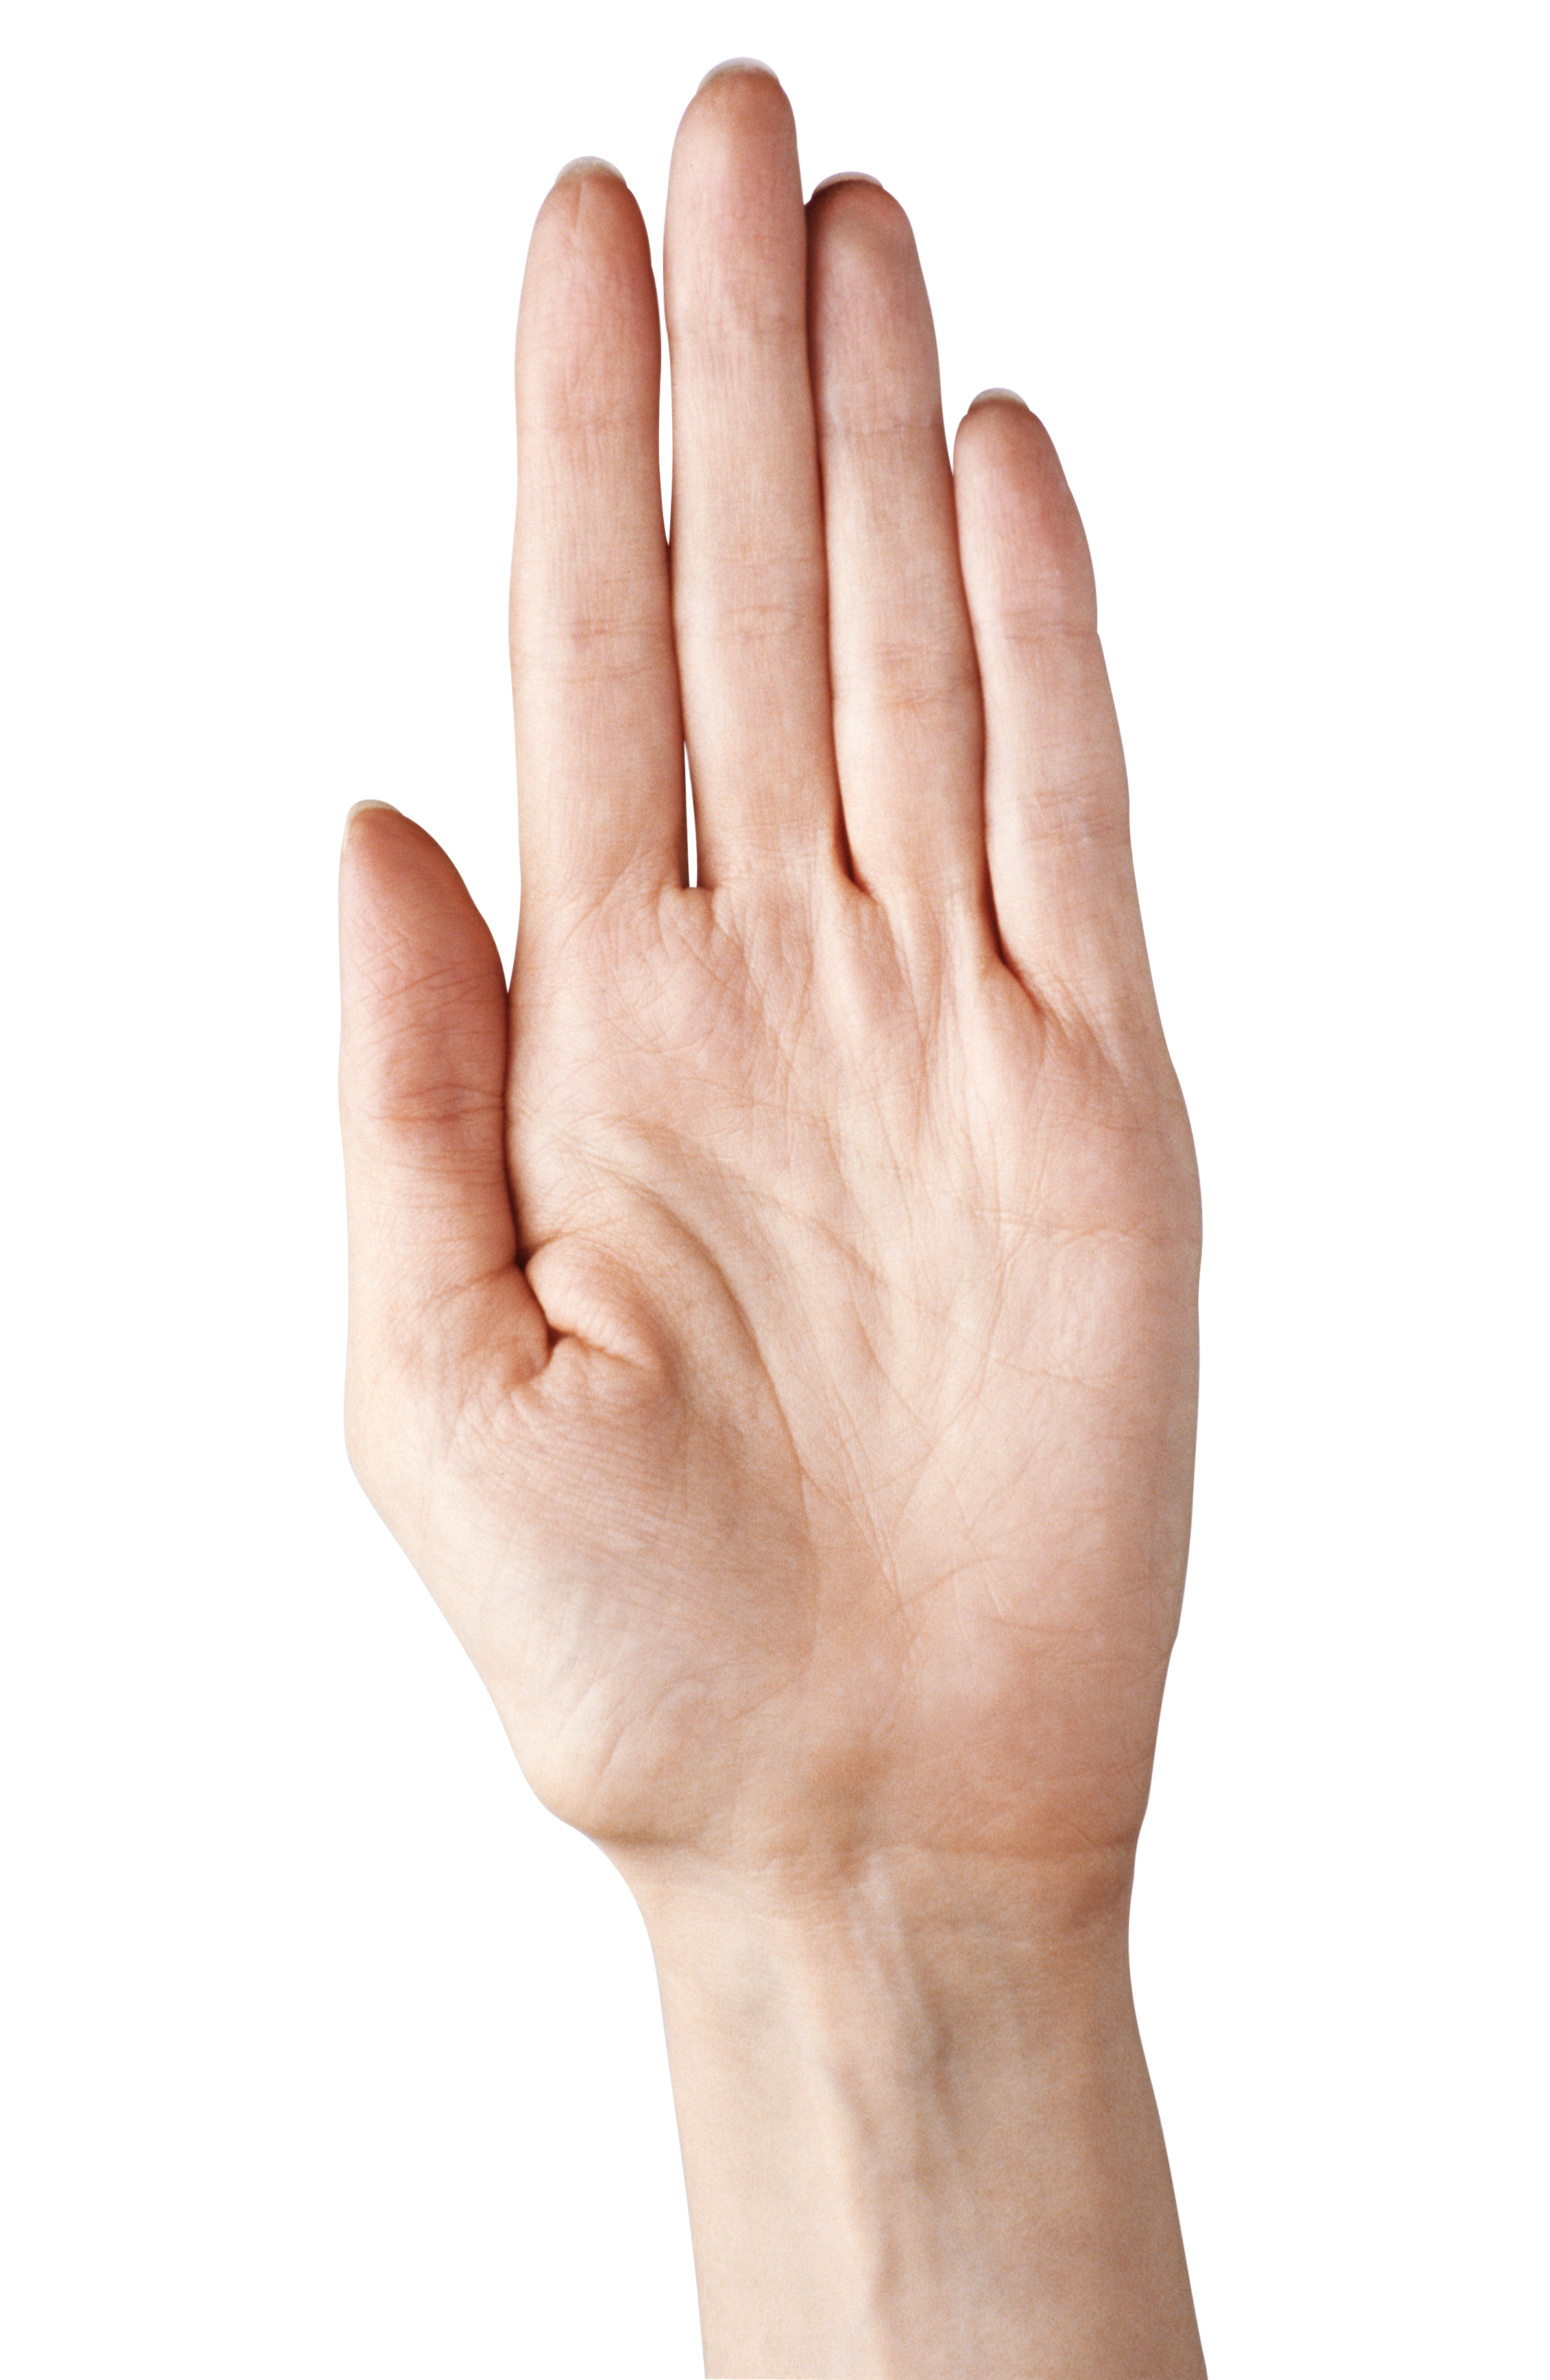 Showing five png picture. Fingers clipart nice hand